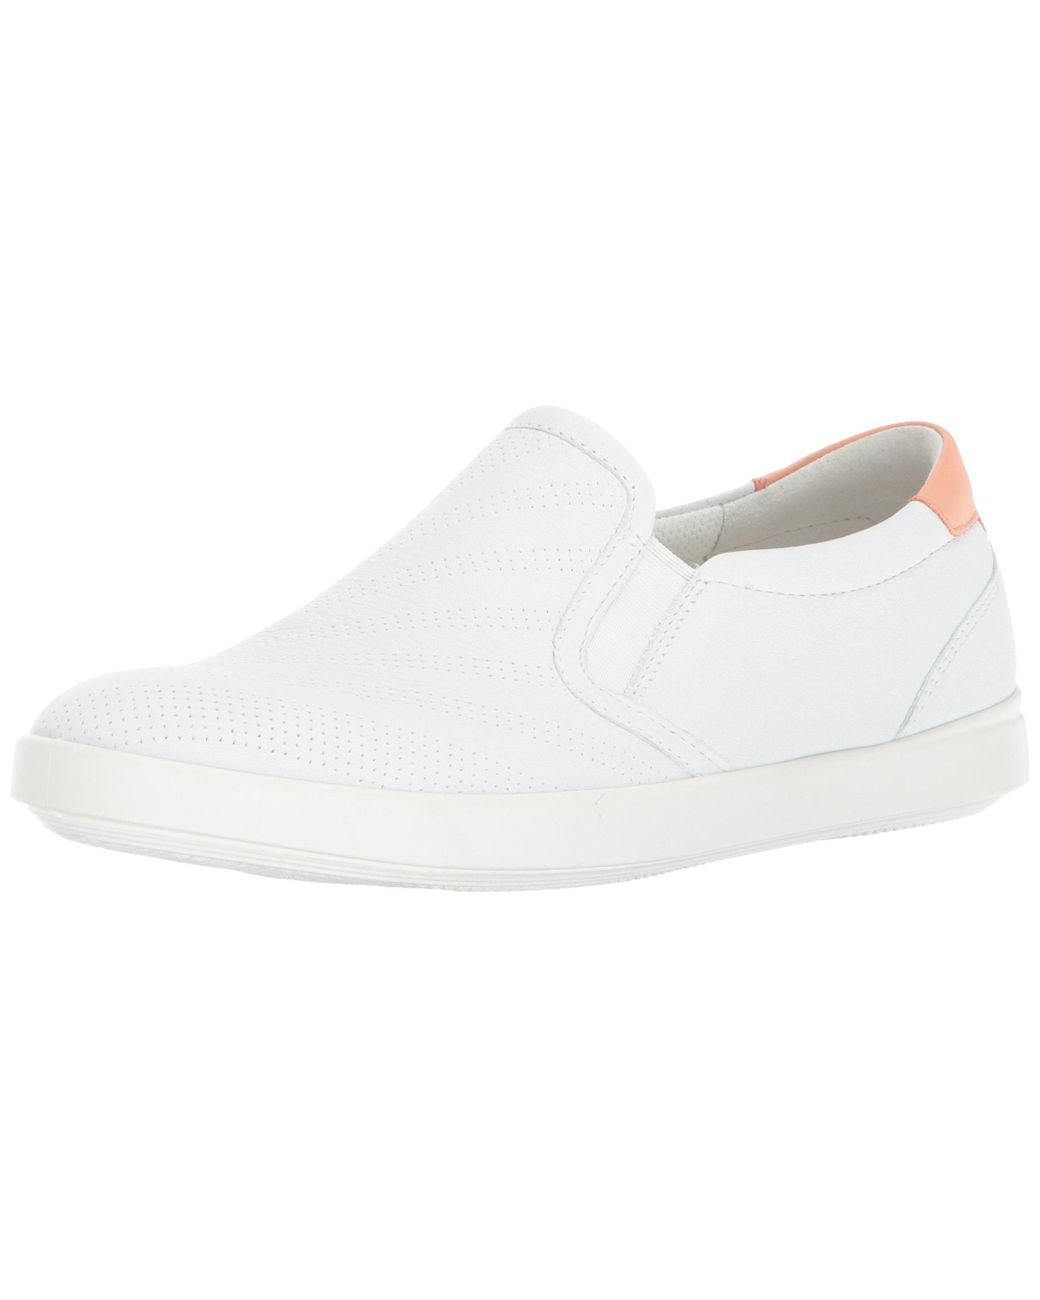 Ecco Leather Aimee Perforated Slip On